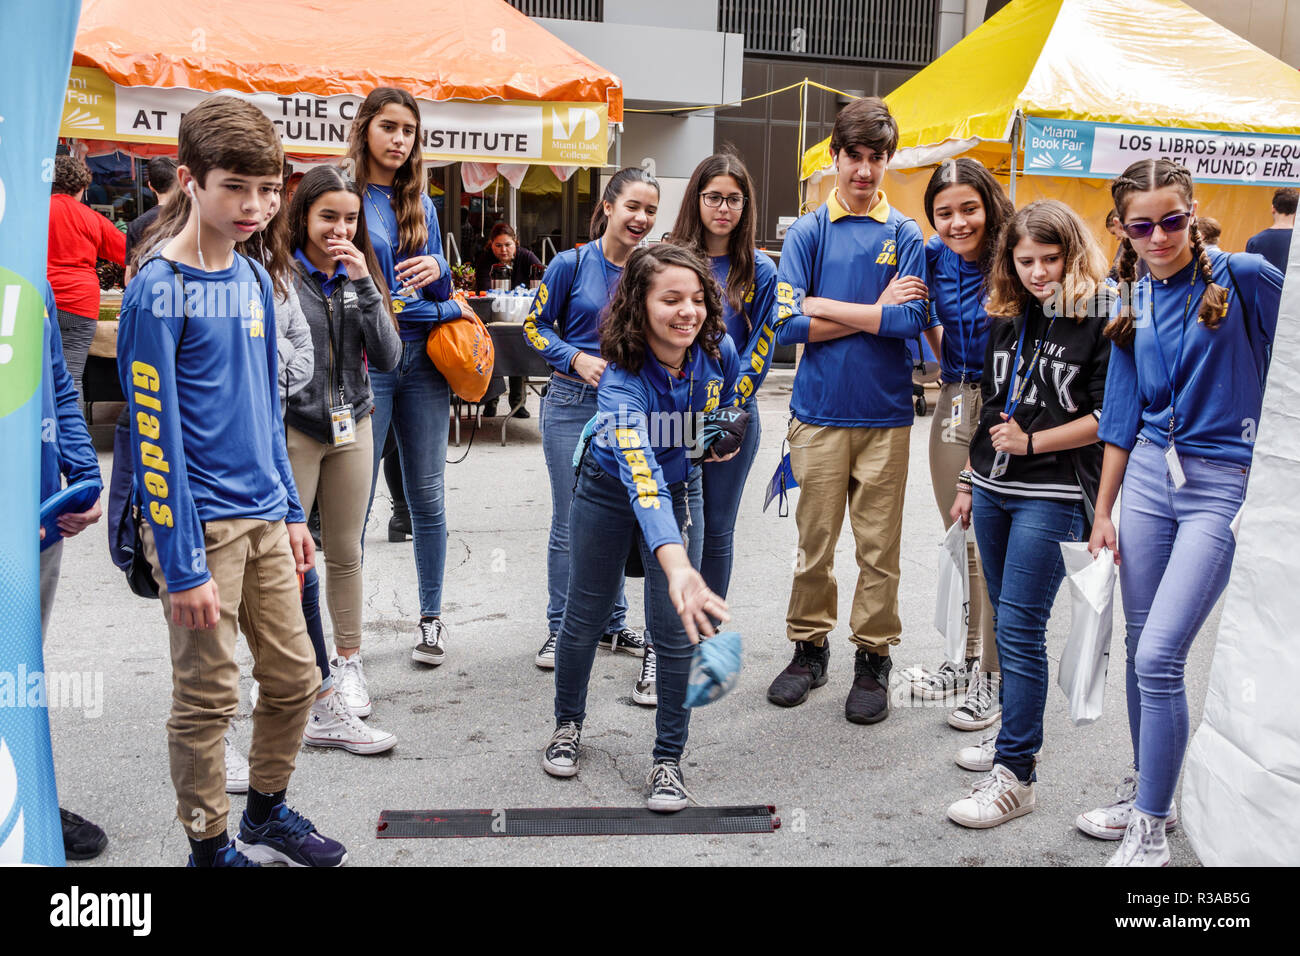 Miami Miami Florida-Dade College Book Fair annual event booths stalls vendors booksellers books sale shopping bean bag toss teen boy girl student watc - Stock Image